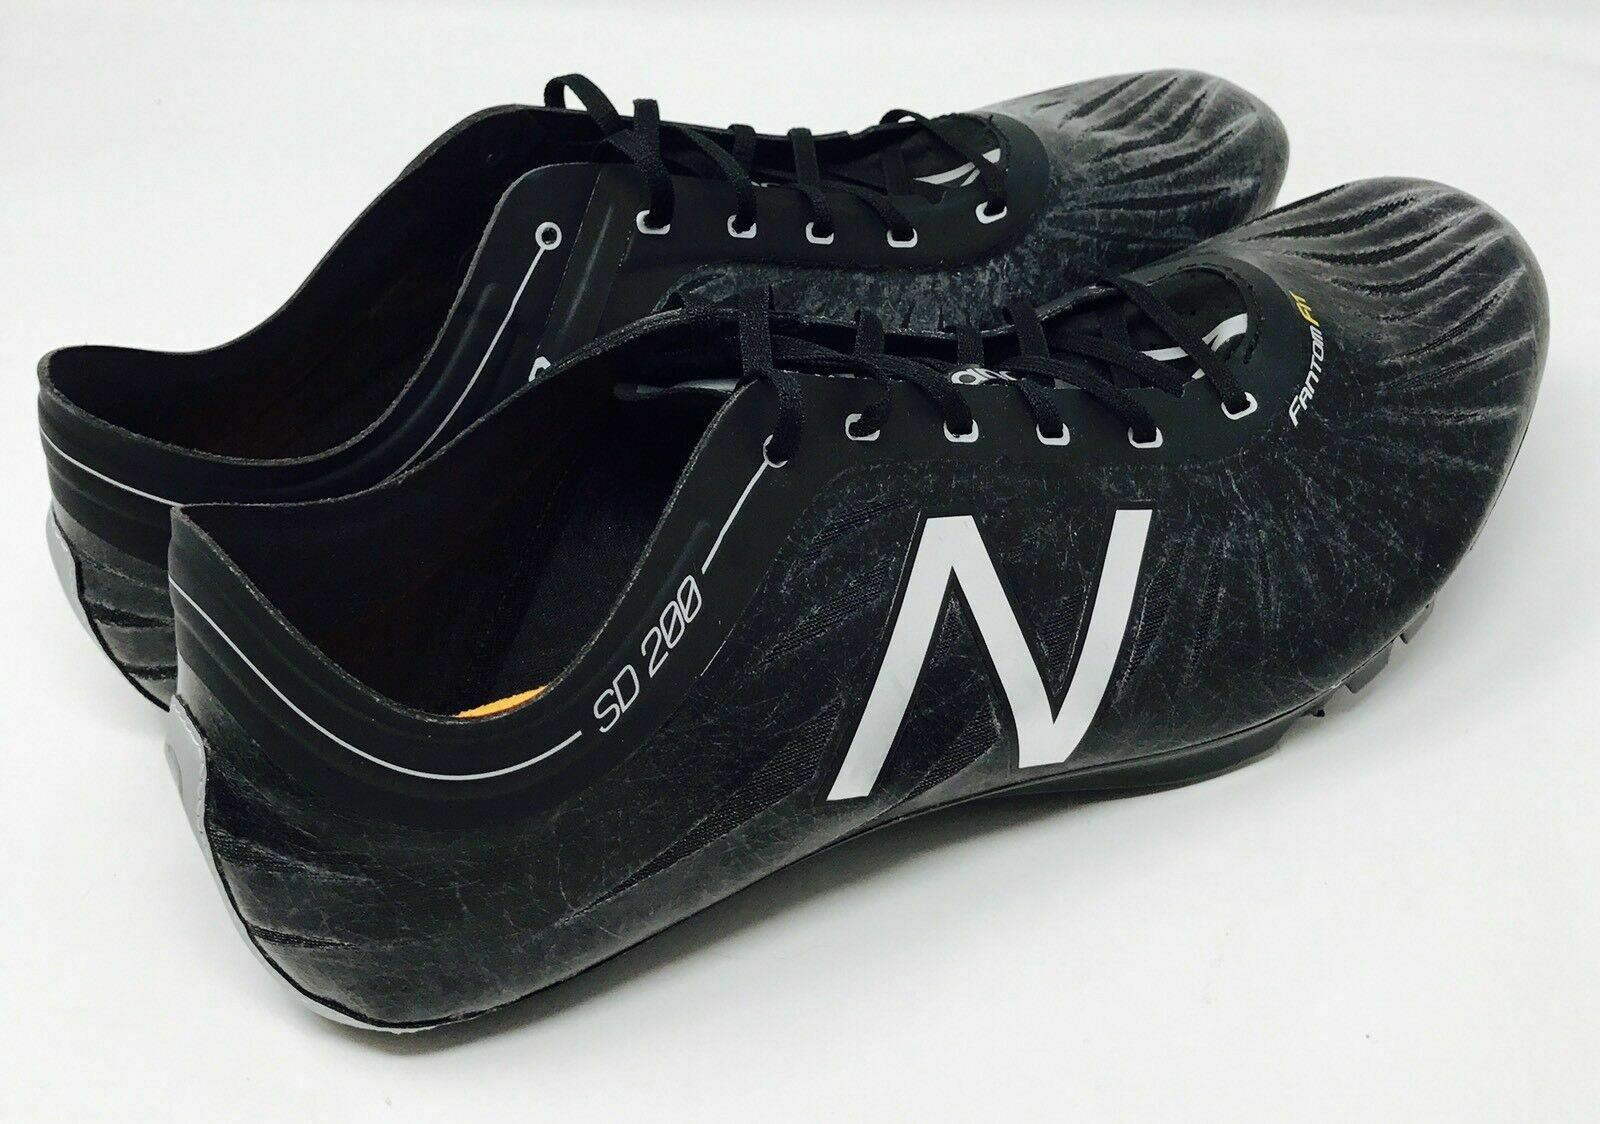 Size 12 New Balance Mens Track and Field Spikes Running shoes Black SD 200